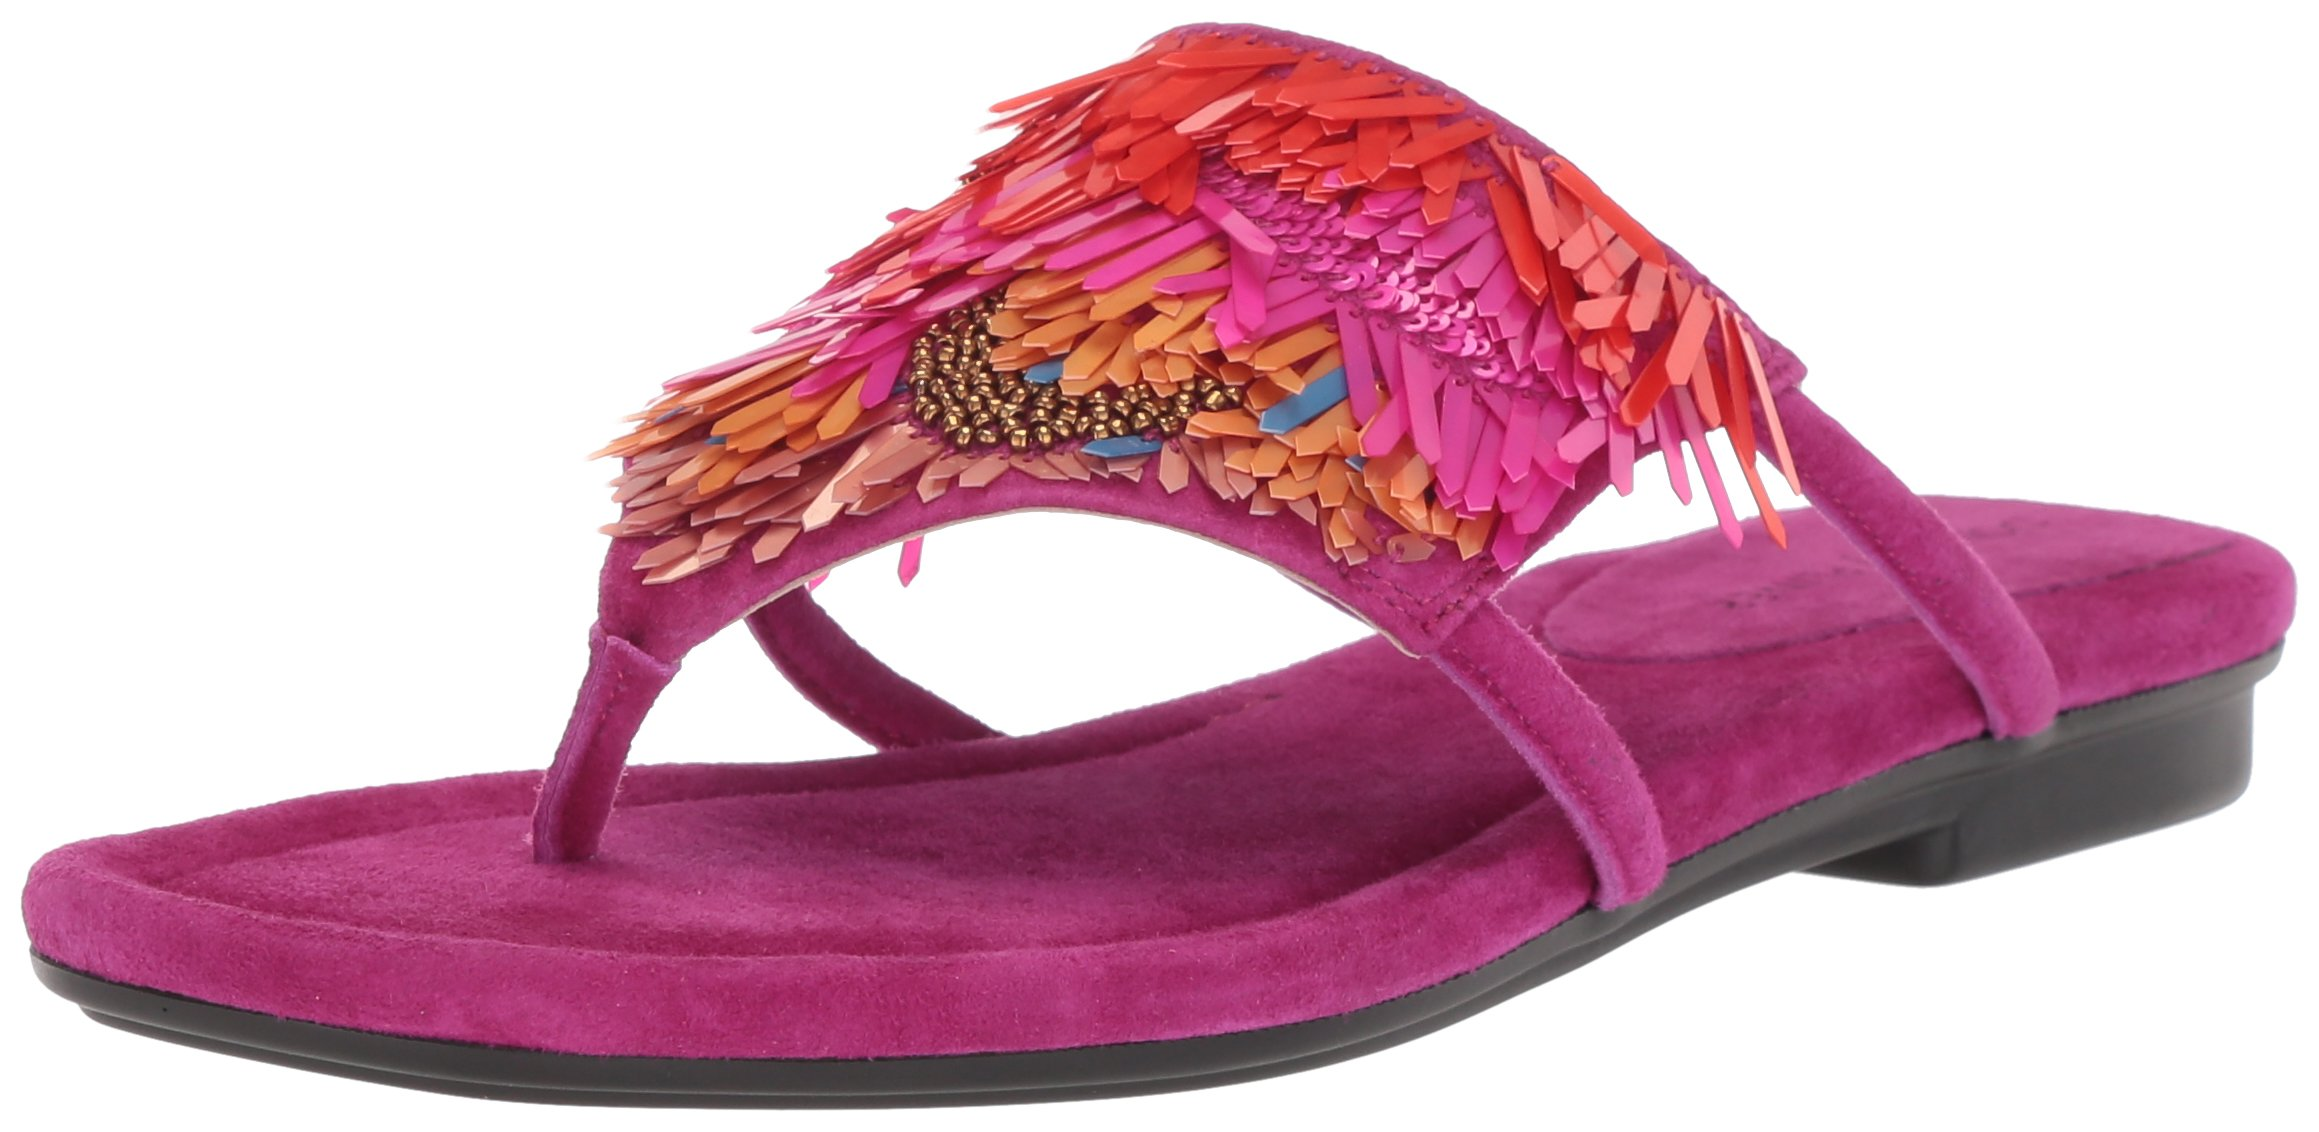 Donald J Pliner Women's Kya Slide Sandal, Magenta, 10 Medium US